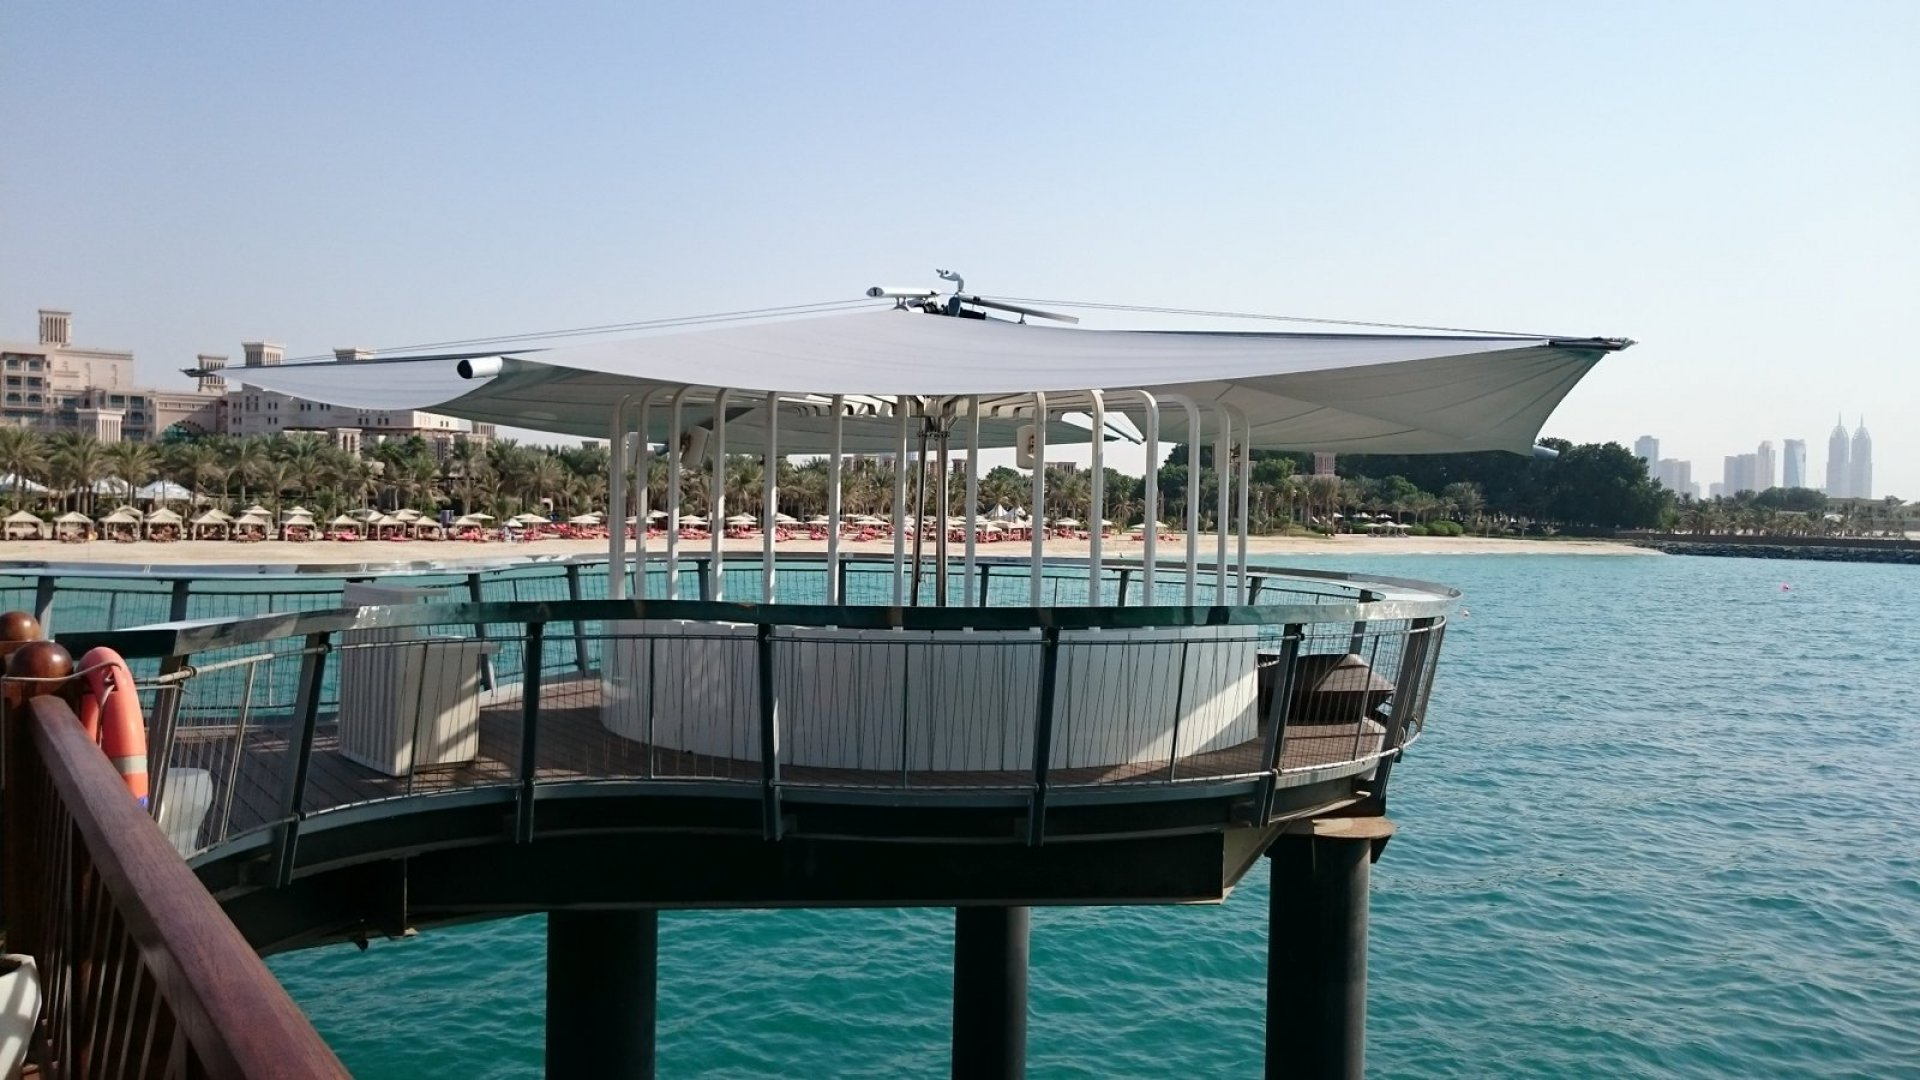 SunSquare in Dubai: Pier Chic